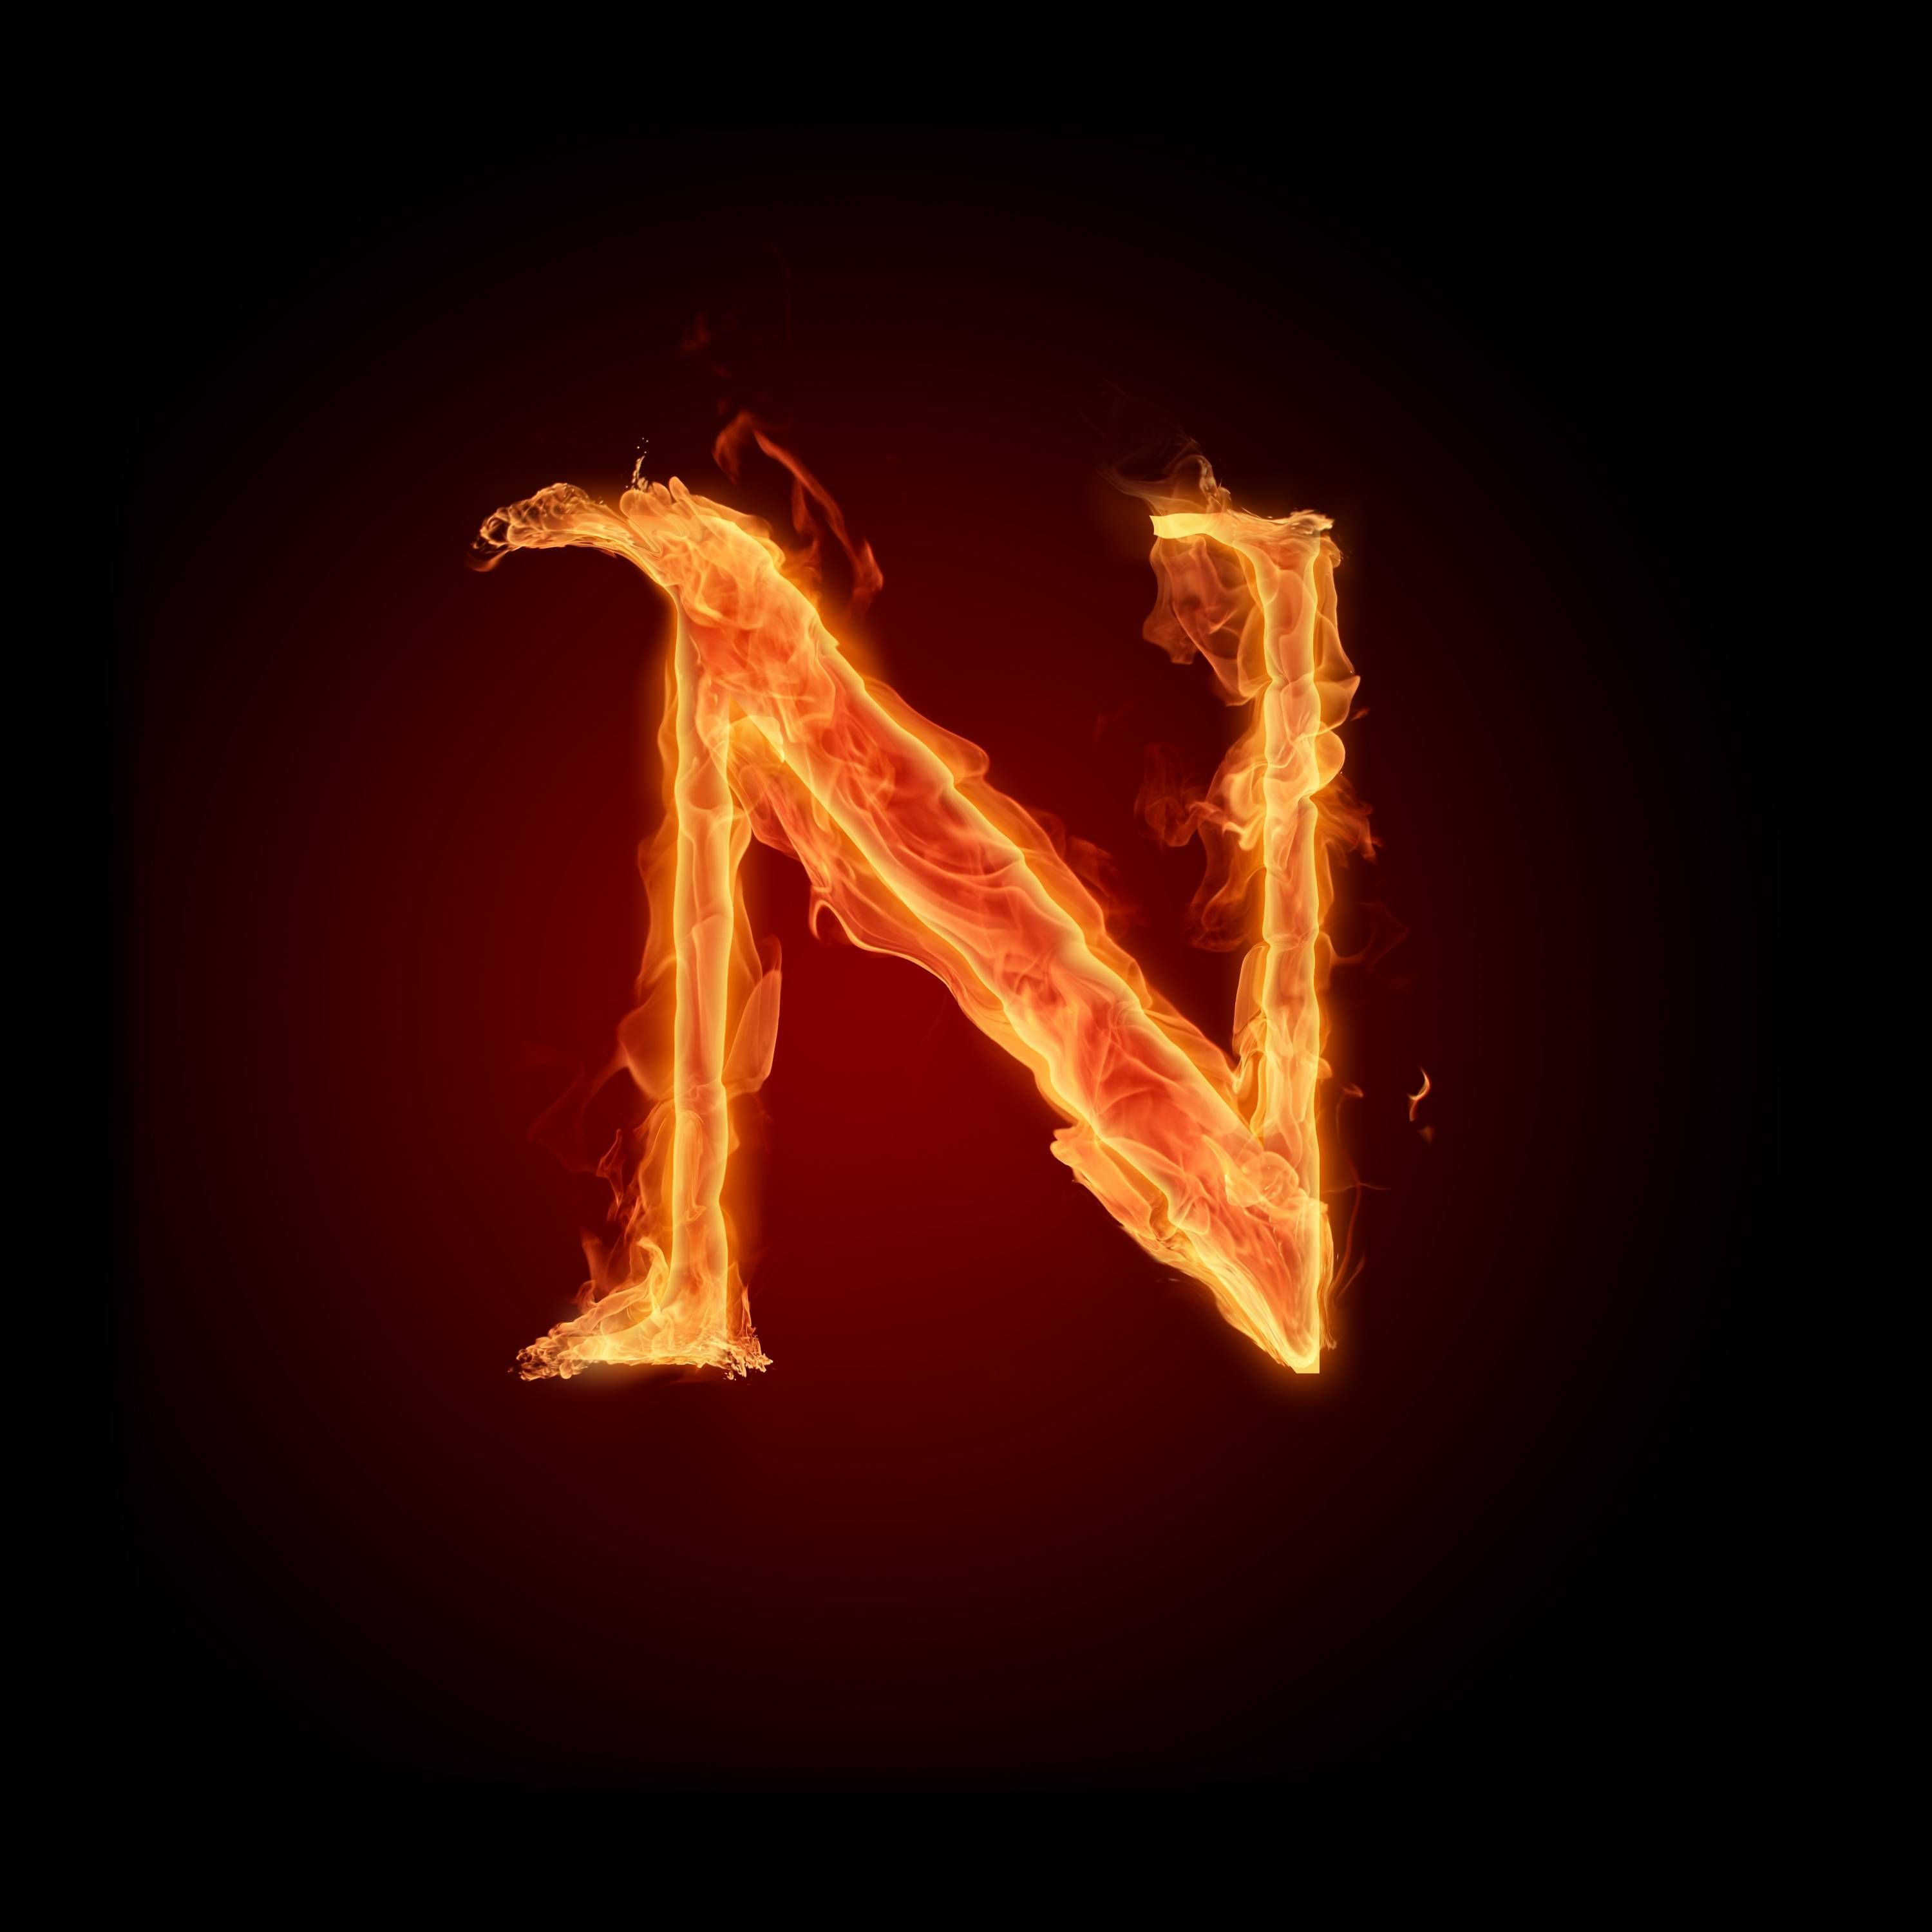 Letter N Wallpapers Top Free Letter N Backgrounds Wallpaperaccess